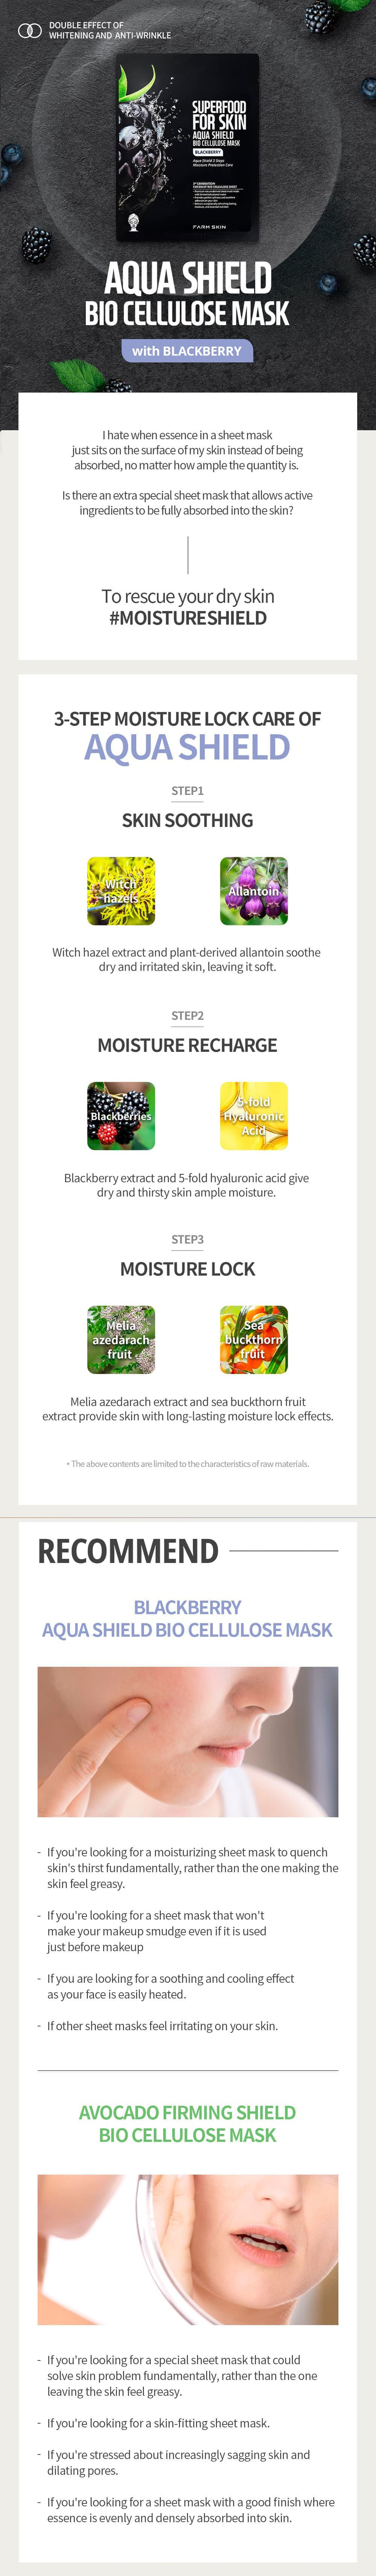 Superfood For Skin Firming Shield Bio Cellulose Mask blackberry